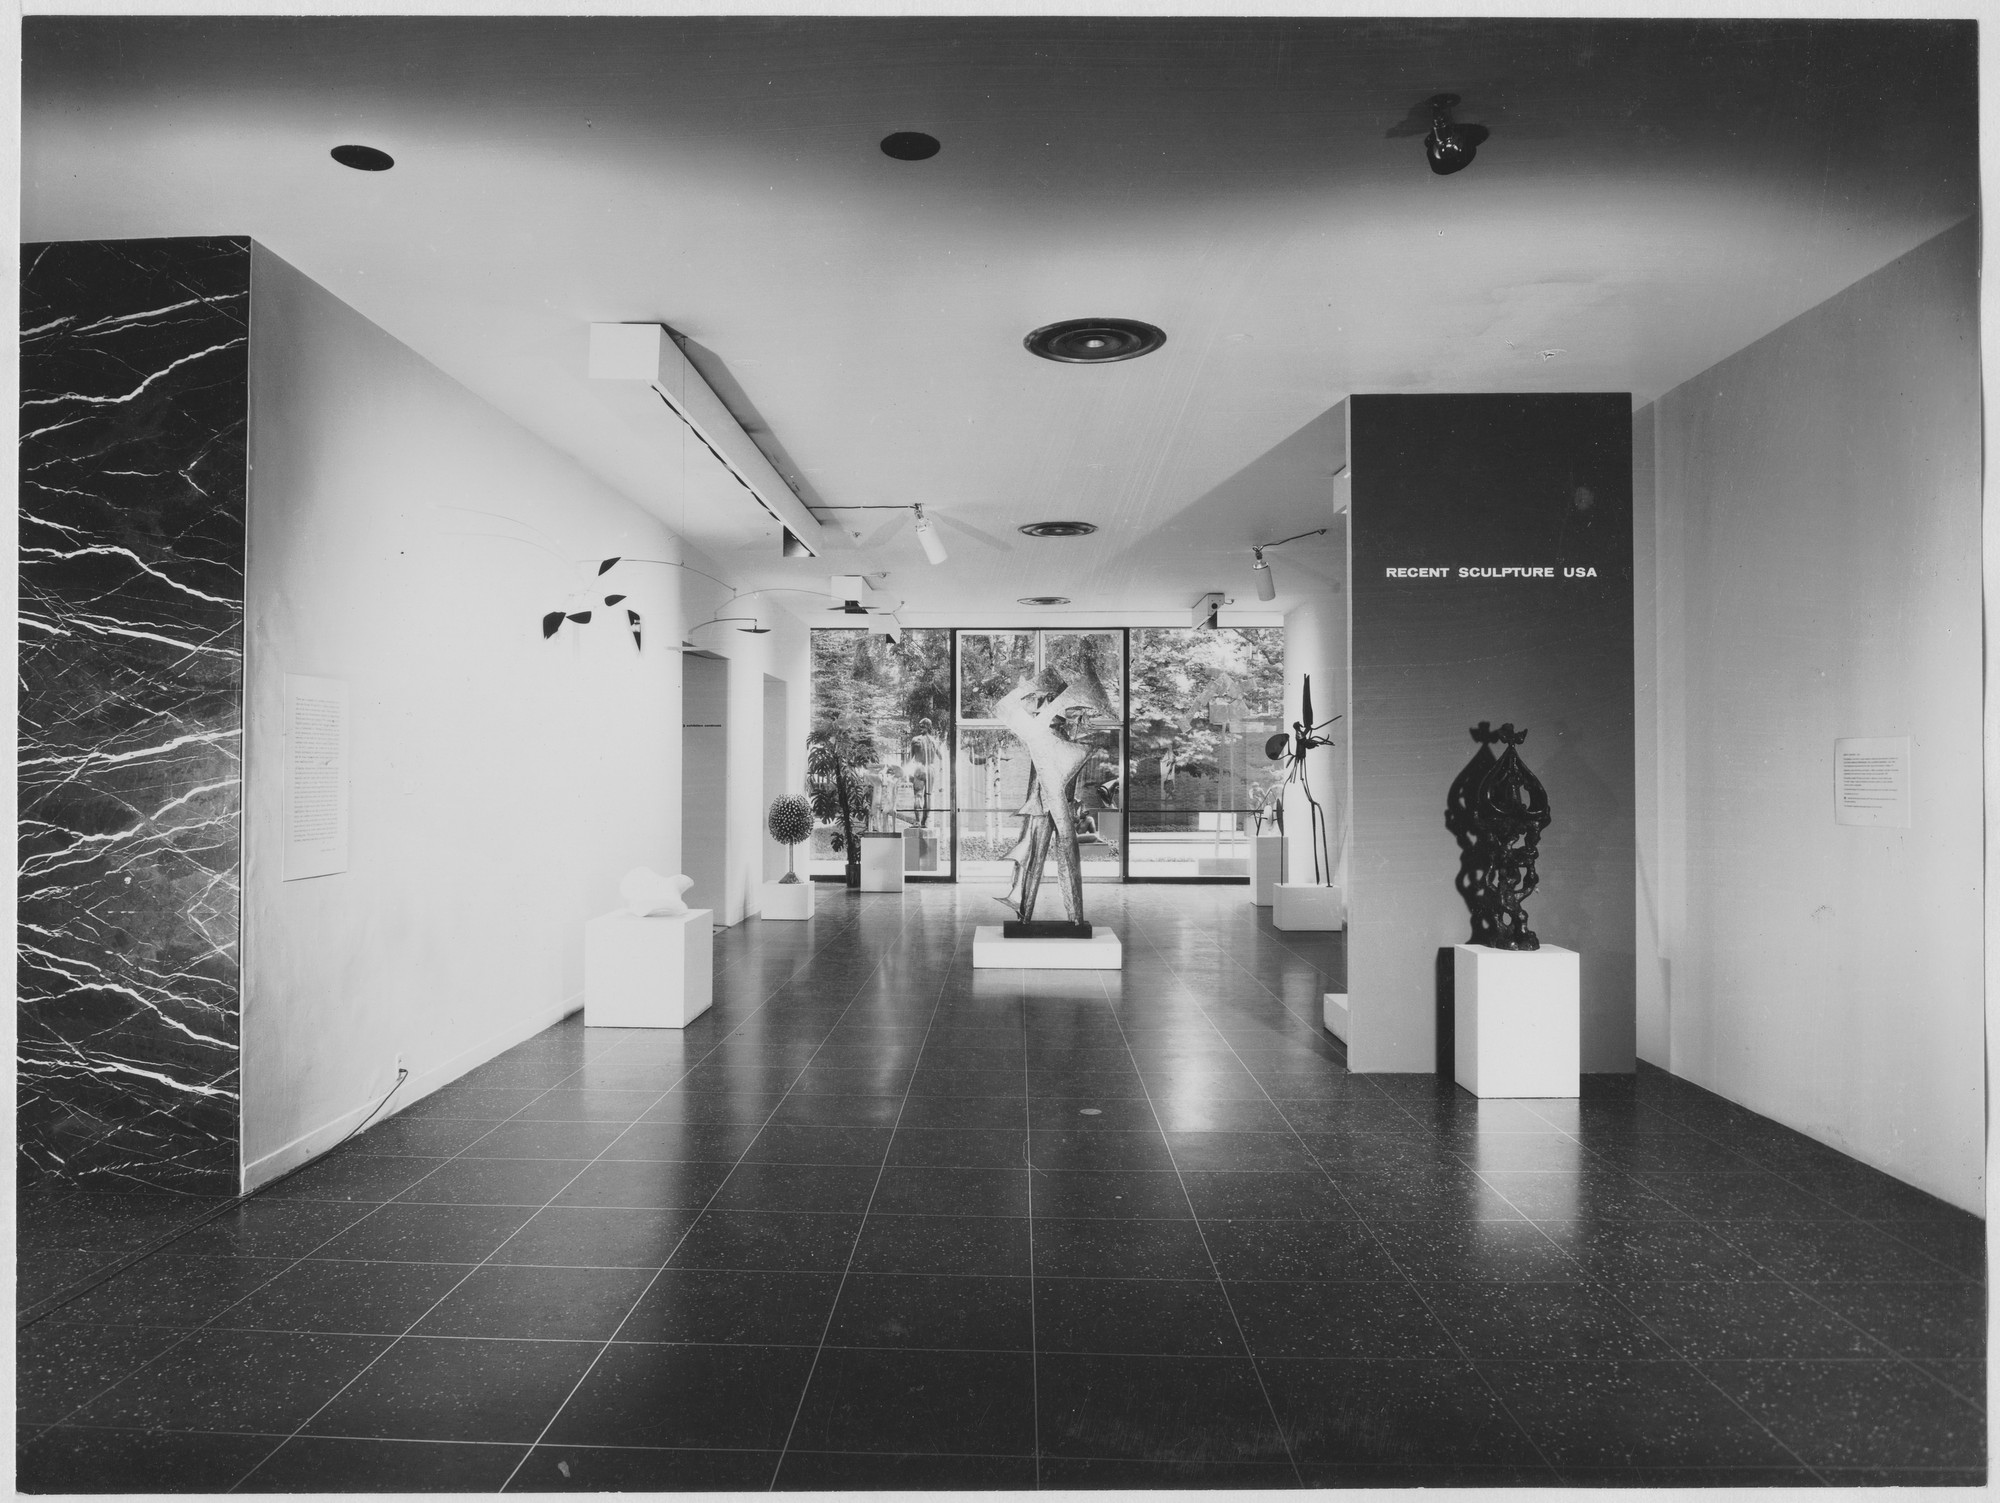 "Installation view of the exhibition, ""Recent Sculpture U.S.A."" May 13, 1959–August 16, 1959. Photographic Archive. The Museum of Modern Art Archives, New York. IN644.1. Photograph by Soichi Sunami."